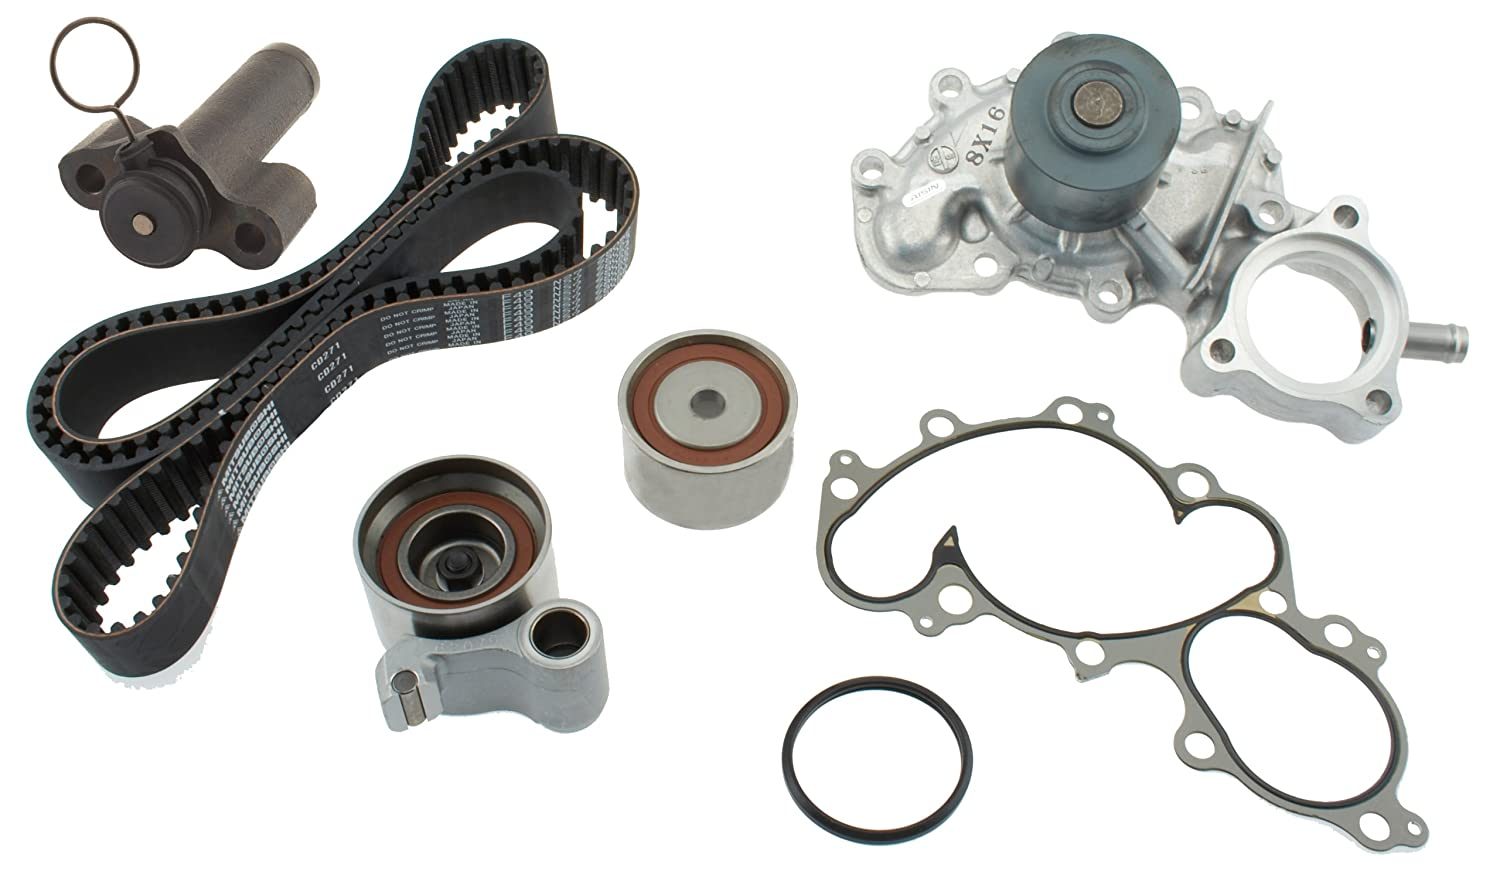 Belts Hoses Pulleys Automotive Special Drive Timing Belt Kit 05 Mazda 6 Aisin Tkt 025 Engine With Water Pump